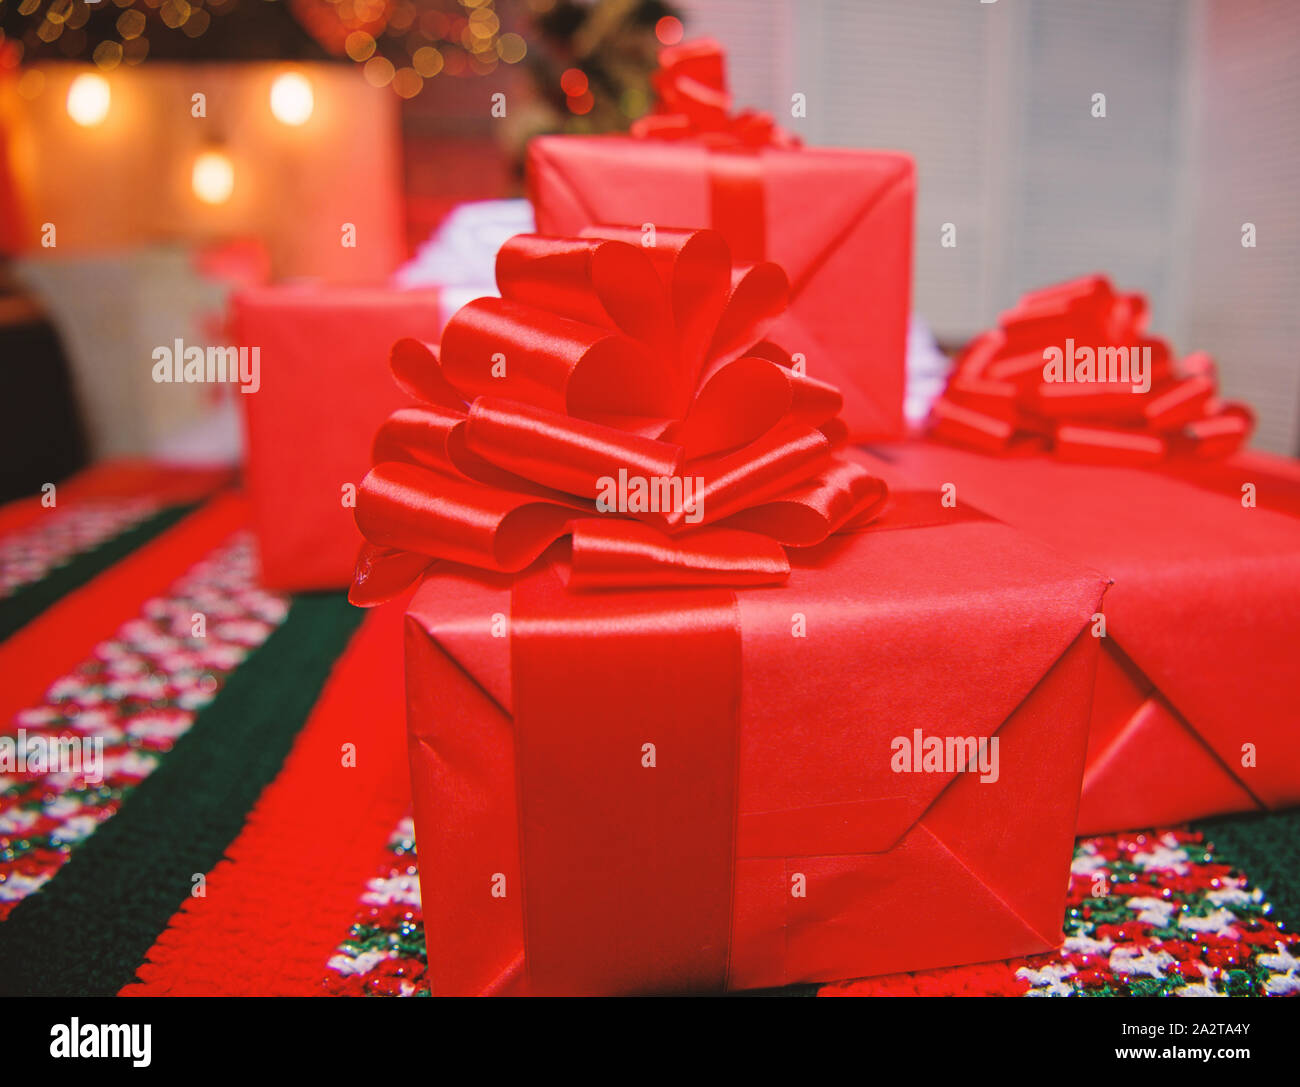 Red Wrapped Gifts Or Presents Prepare For Christmas And New Year